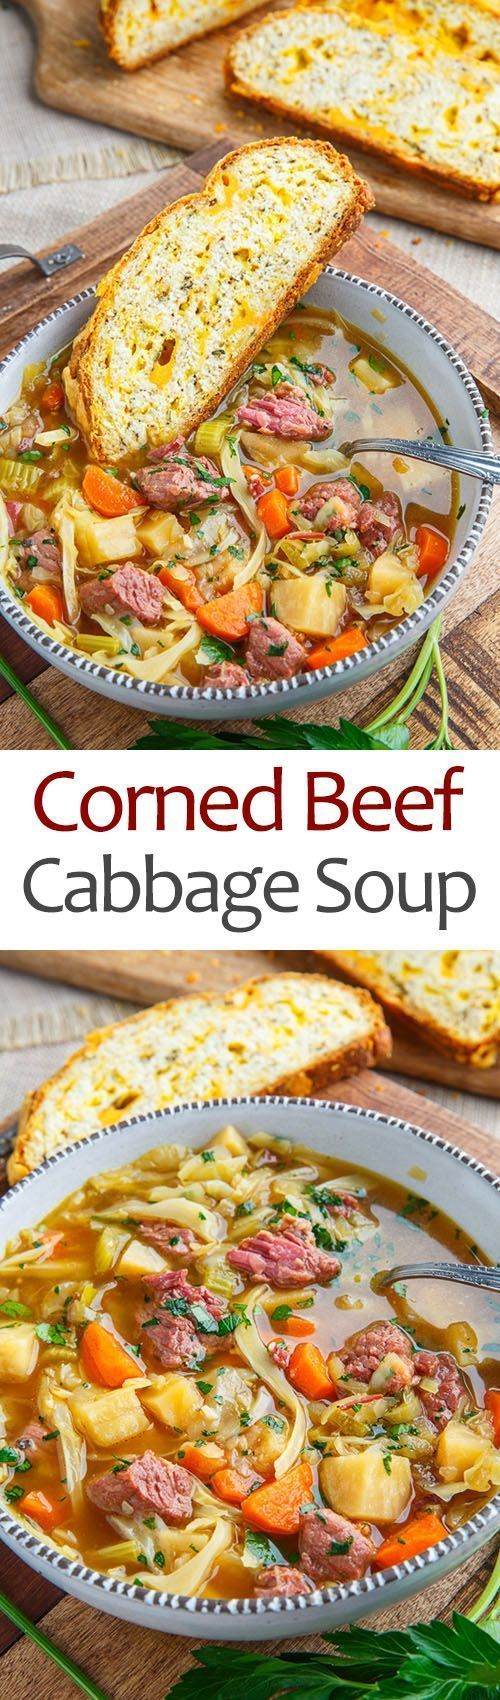 how to cook sopas with corned beef